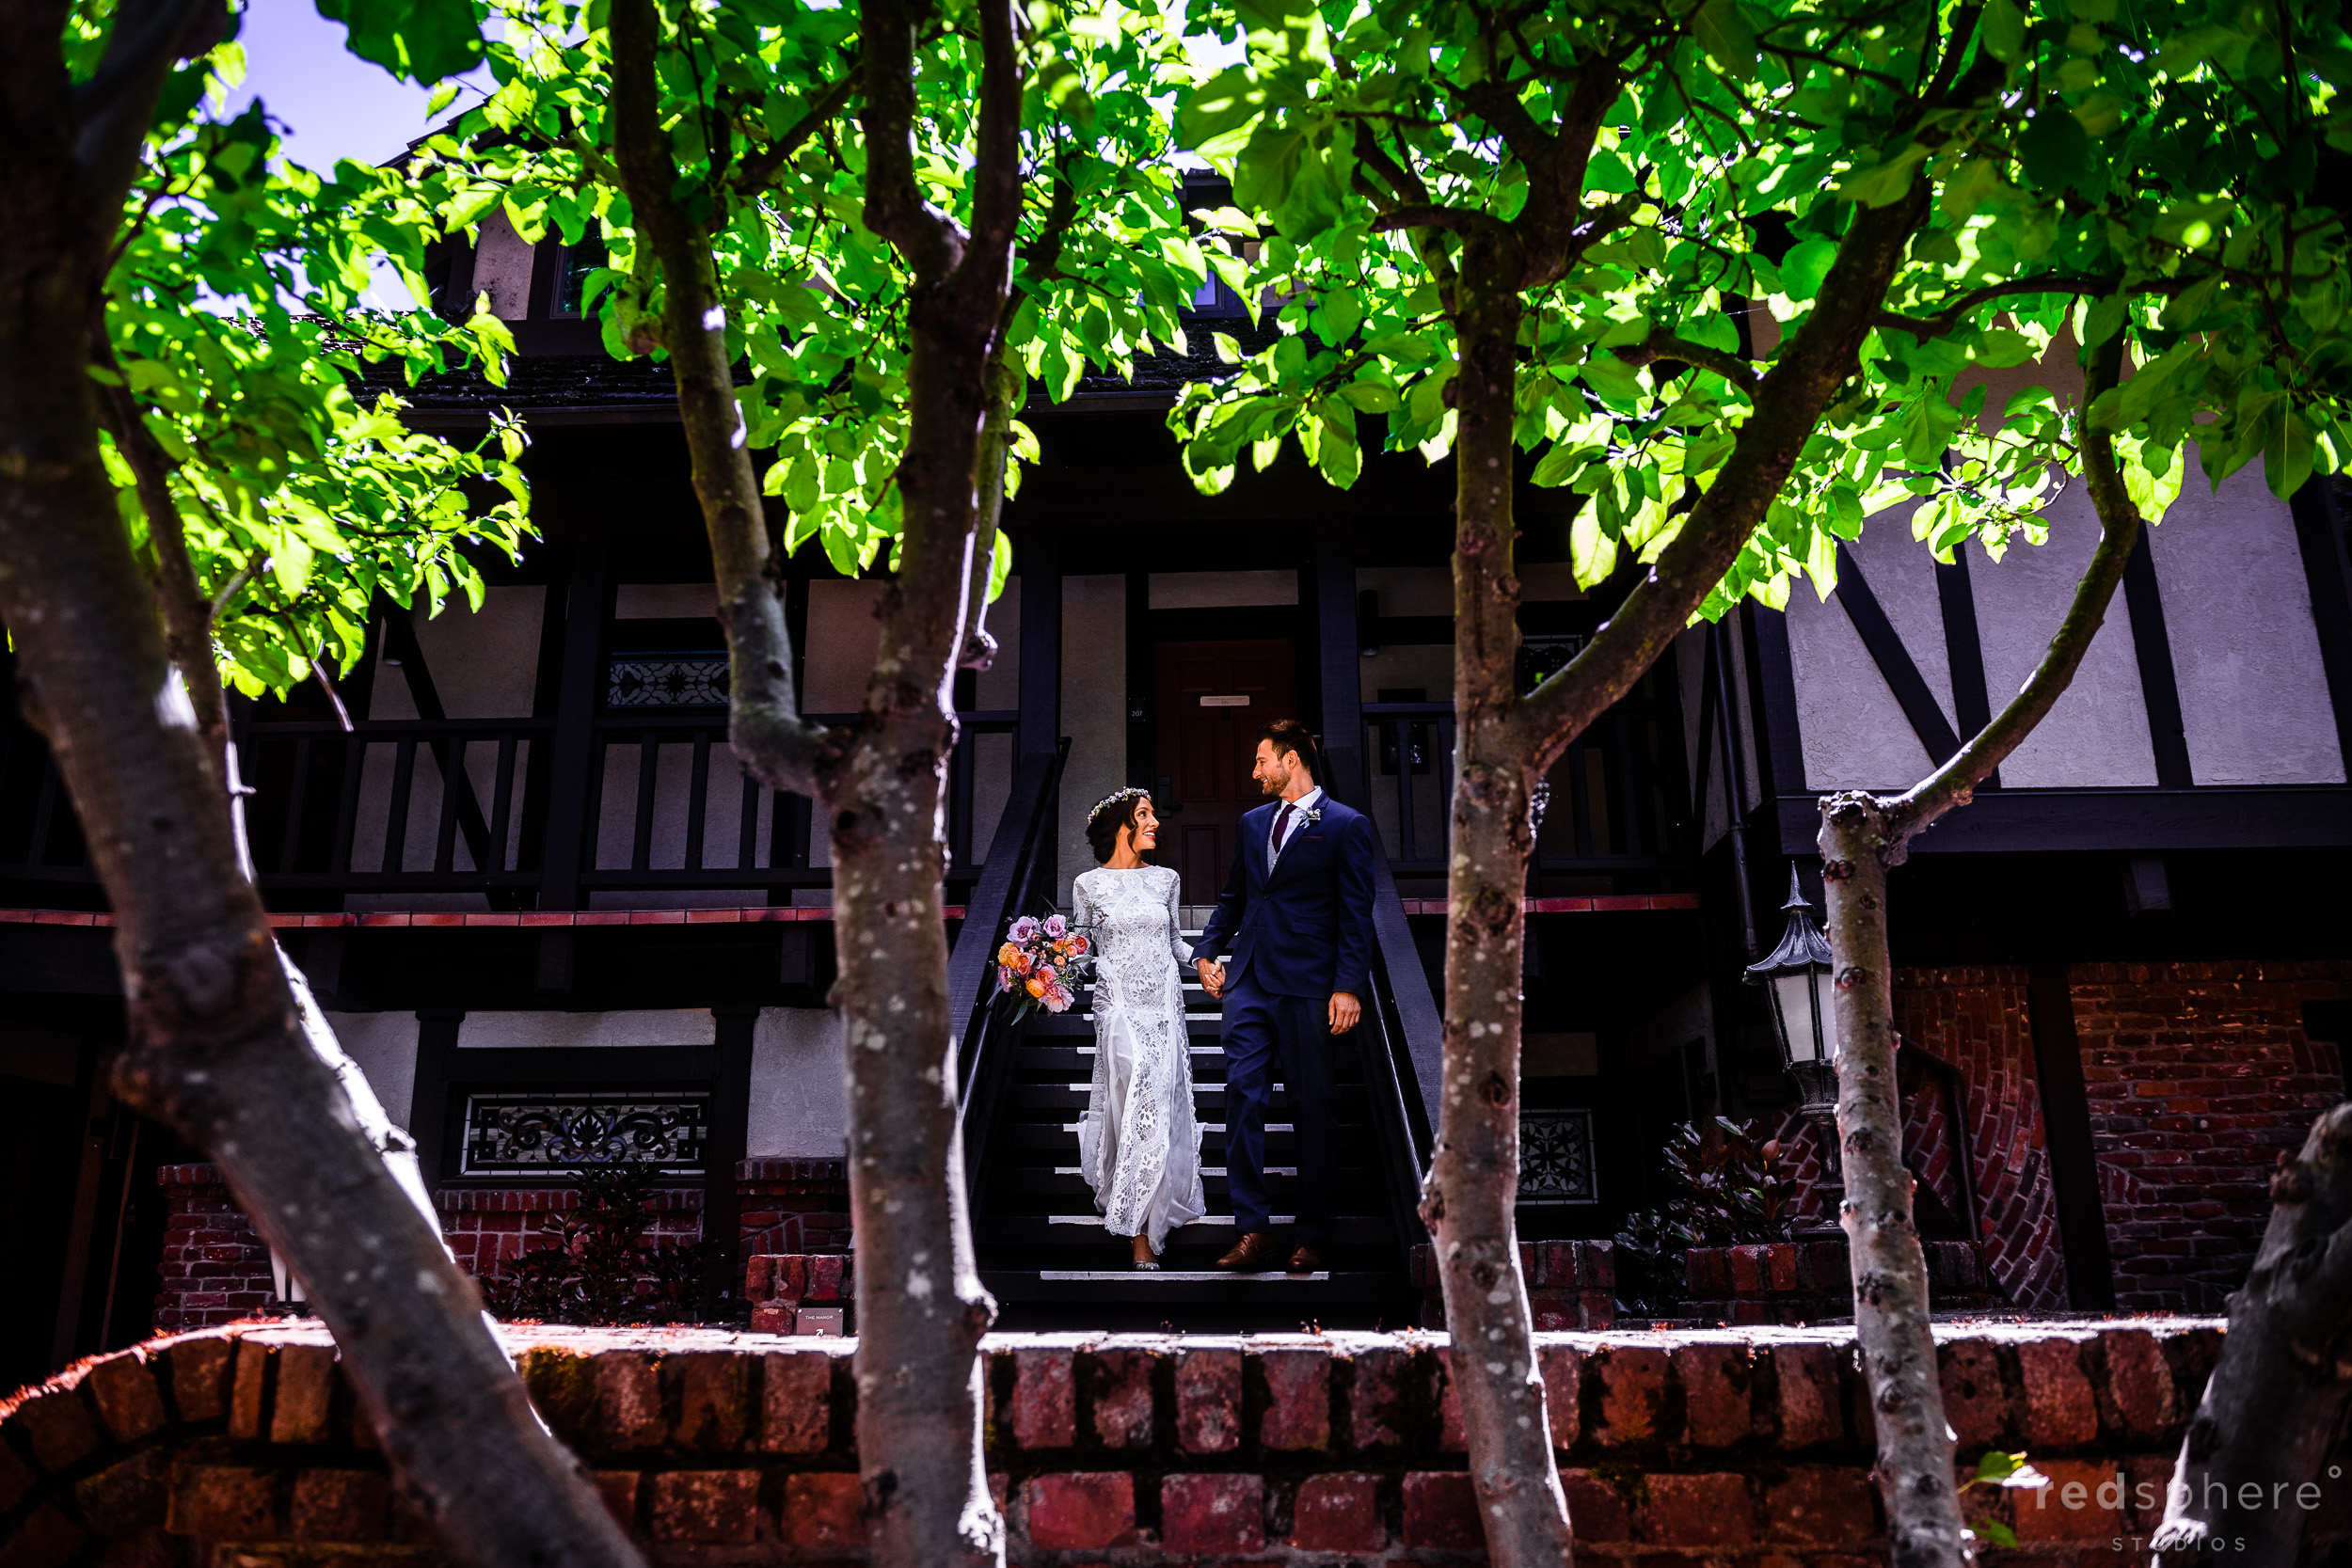 Bride and groom wedding portrait at Harvest Inn By Charlie Palmer, St. Helena, Napa Valley. Dress: Grace Loves Lace